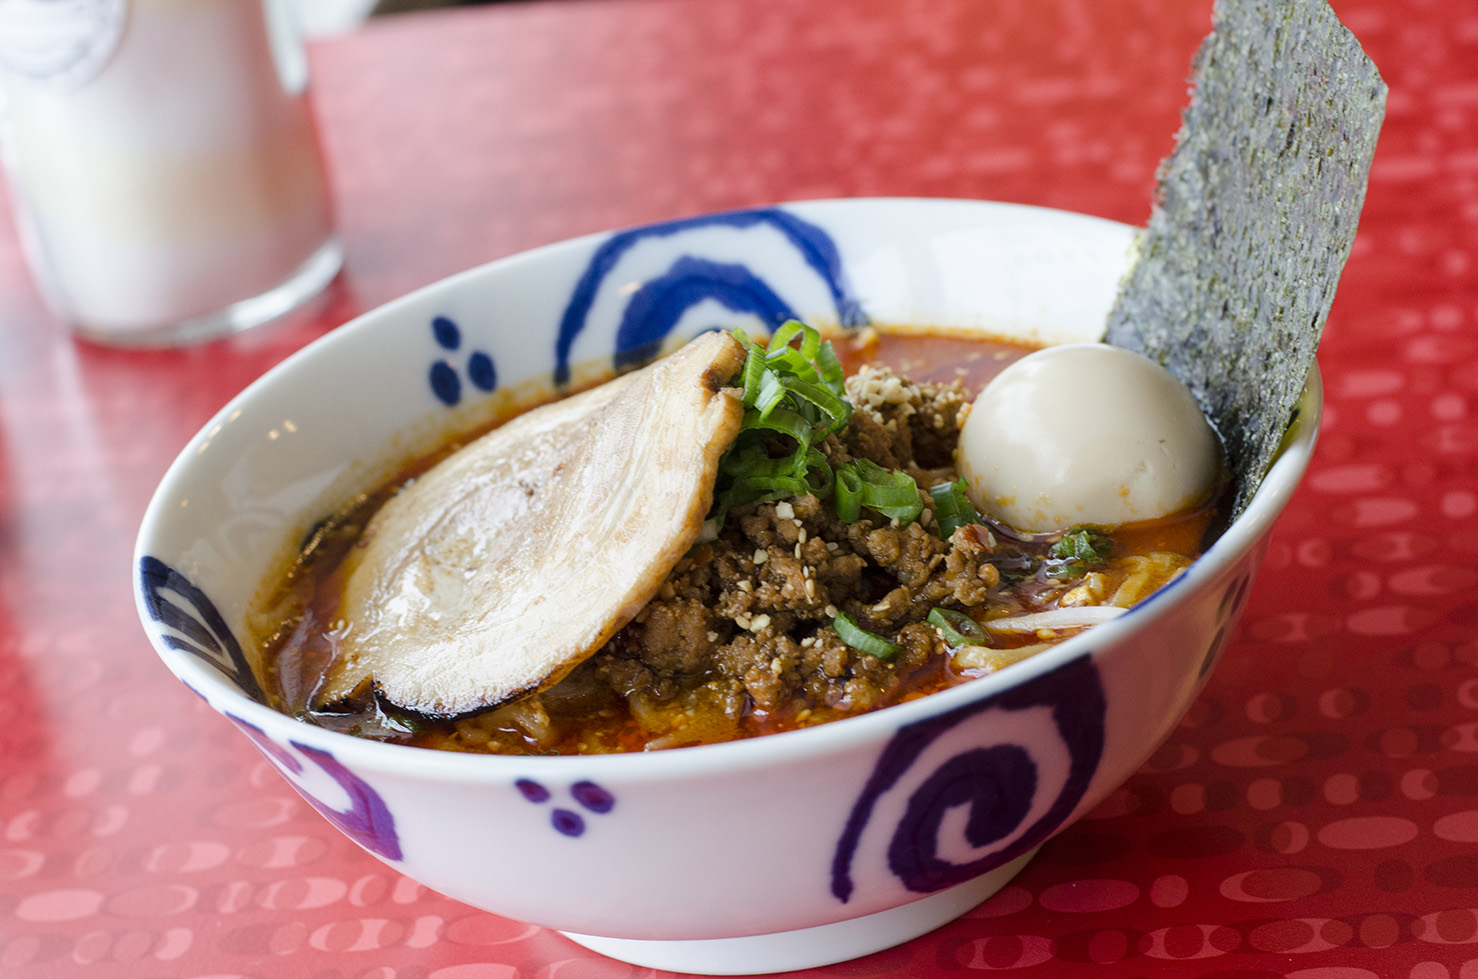 Have you tried the Tantanmen ramen at Eros Asian Eatery?